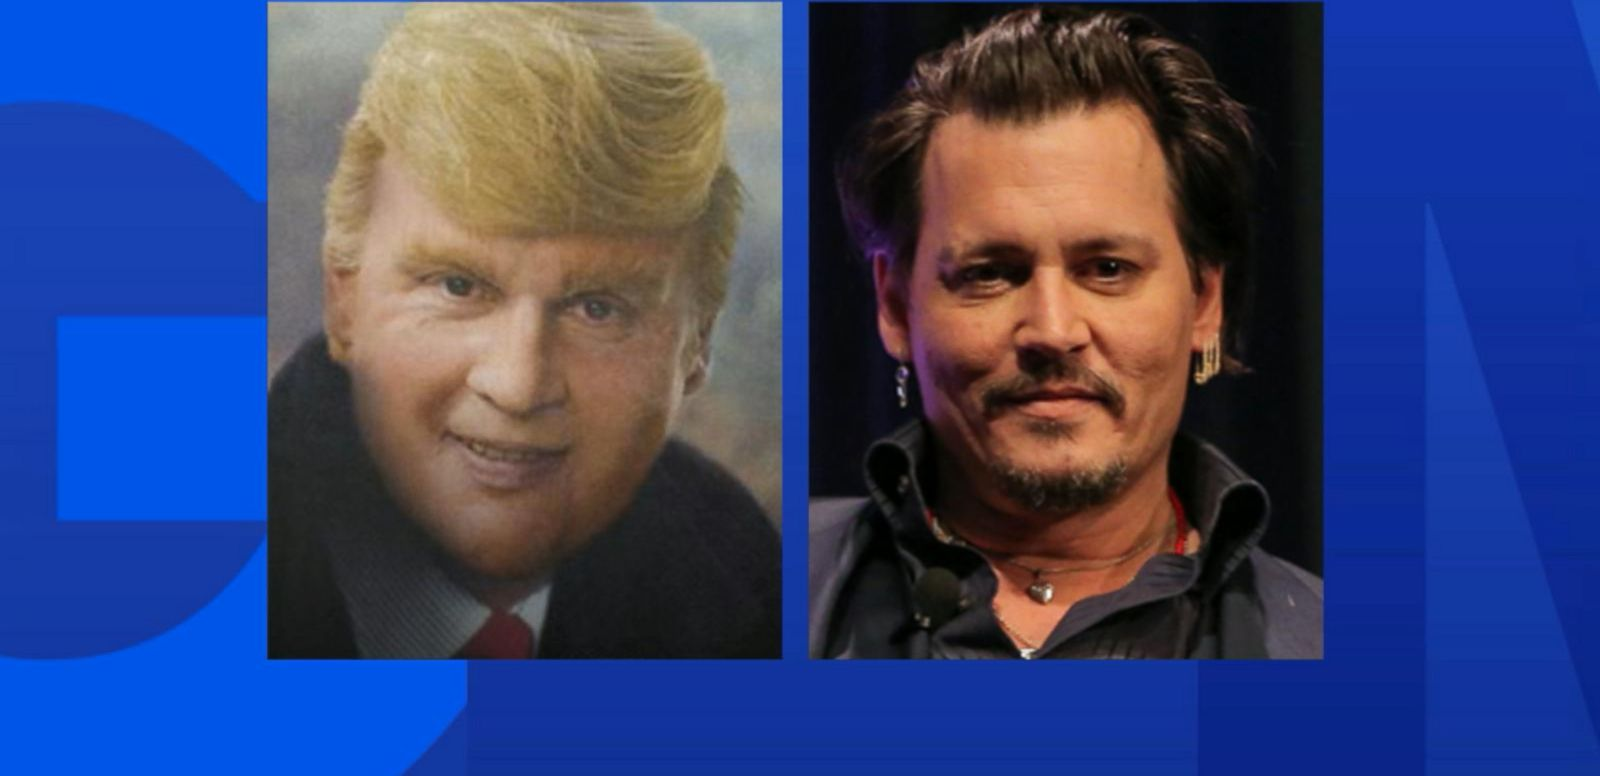 VIDEO: Johnny Depp Plays Donald Trump in 'Art of the Deal' Parody